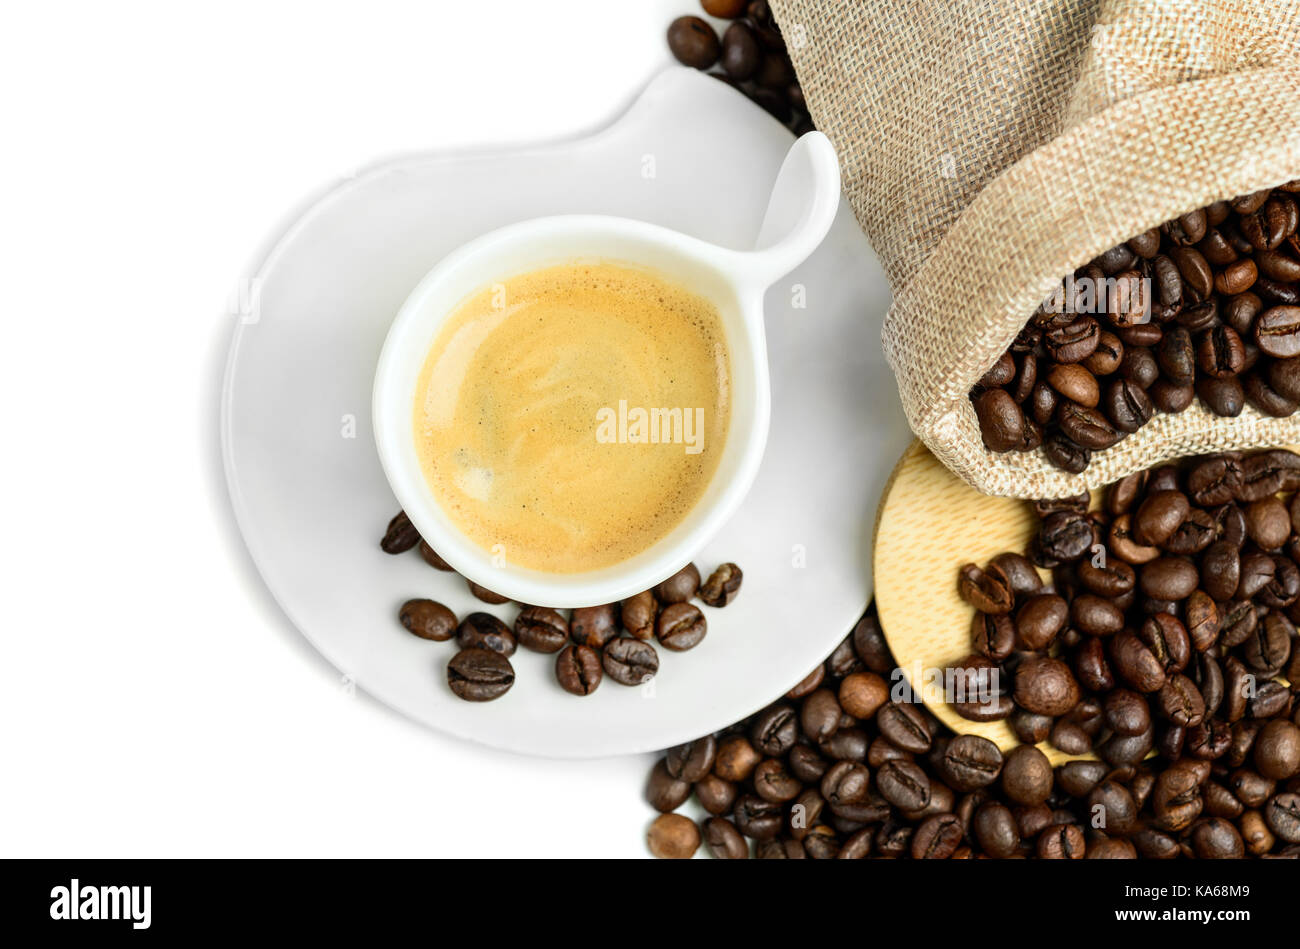 Coffee cup and beans on a white background. Top view. Focus on foam. - Stock Image